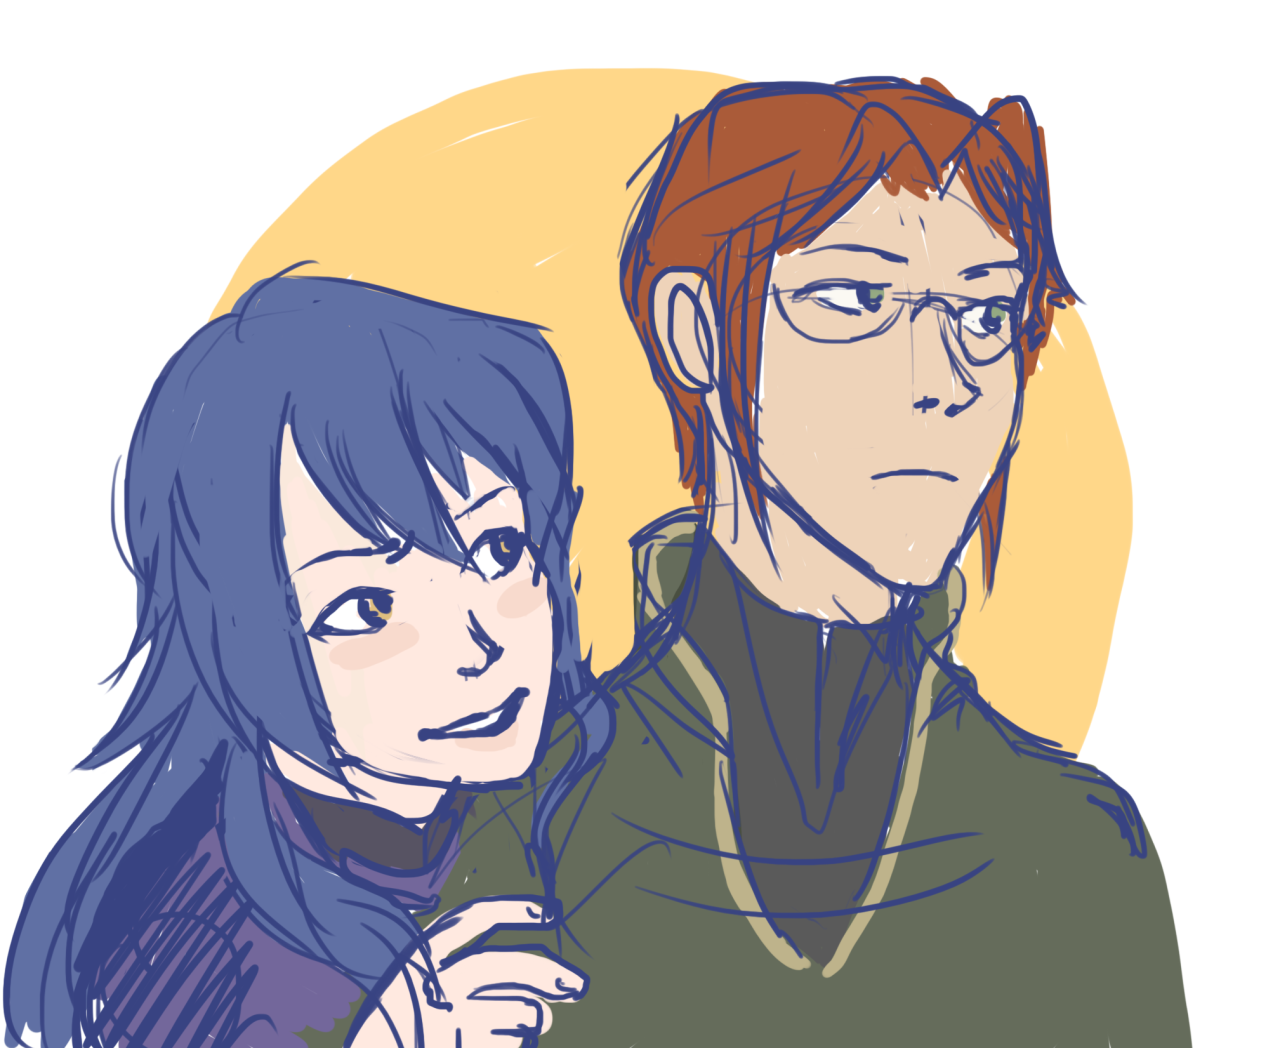 laurent and lucina being the serious, unfun people that they are but trying to loosen up around each other and sometimes one will make a joke and the other will take it very literally until realizing... <<I think they have humor but they don't have the time for it. When they do, I think it's very well thought out.